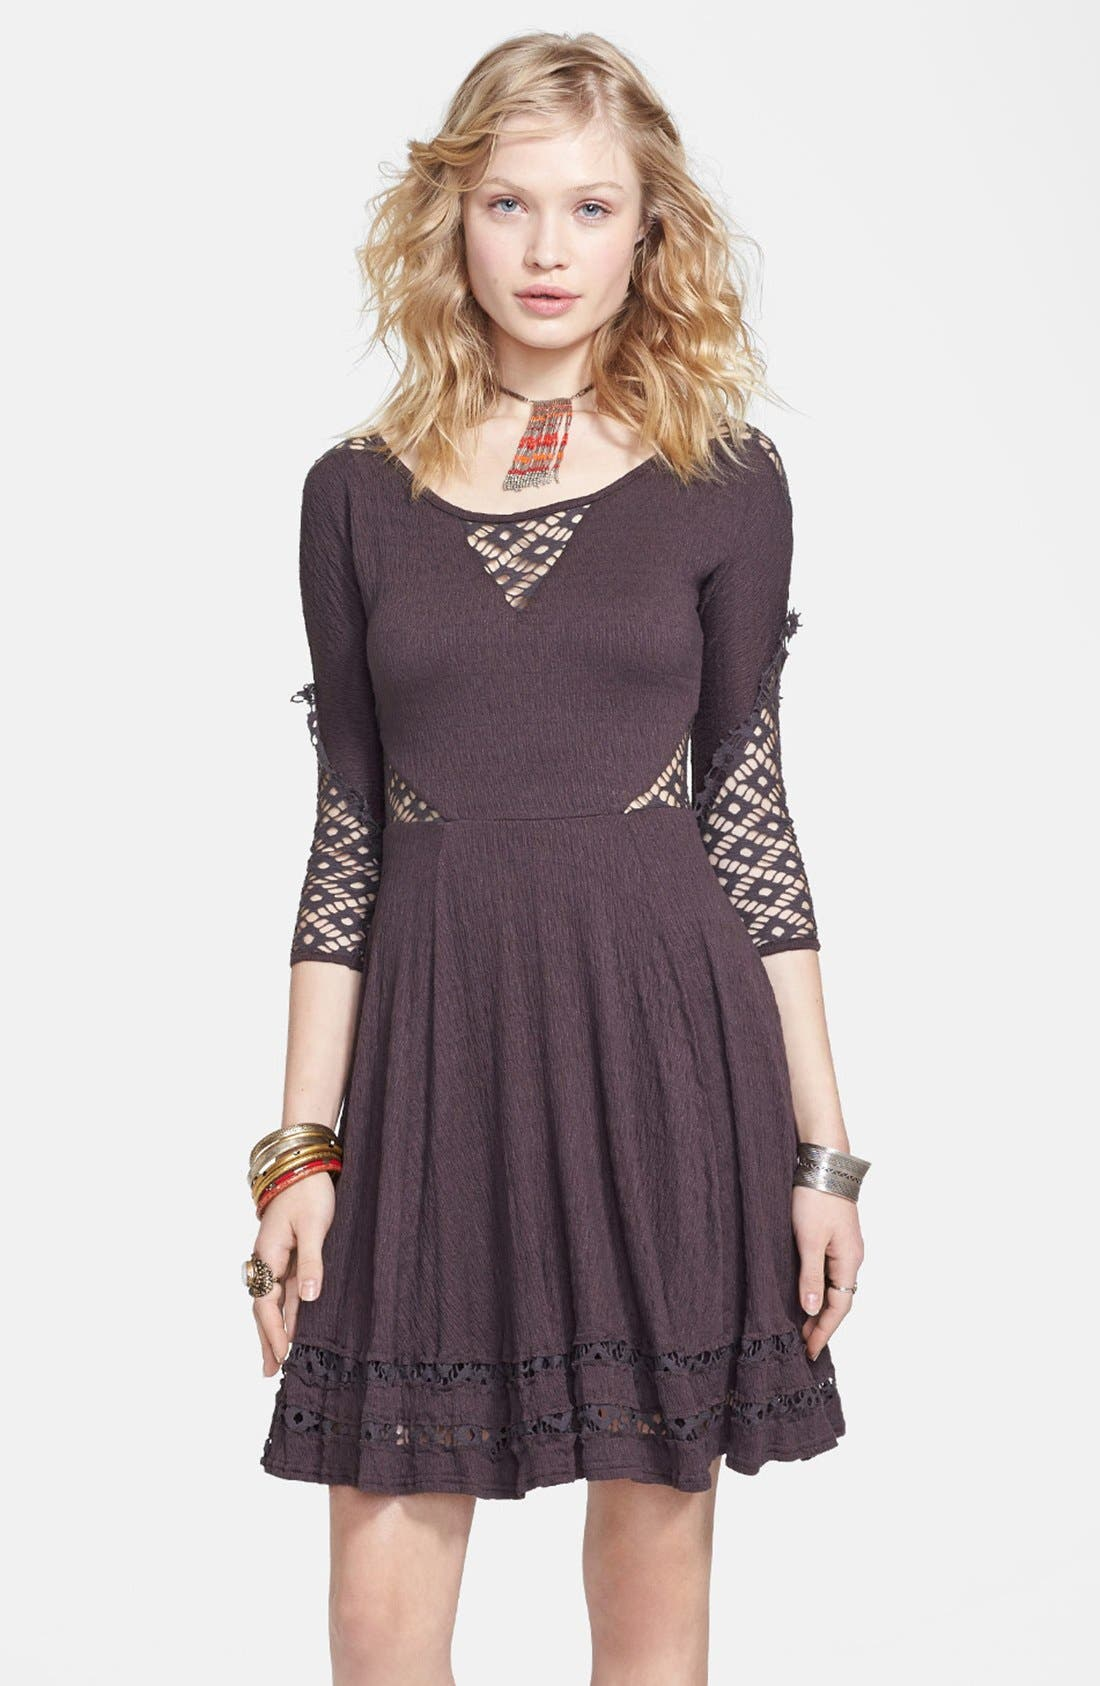 Alternate Image 1 Selected - Free People 'To the Point' Lace Inset Crinkled Fit & Flare Dress